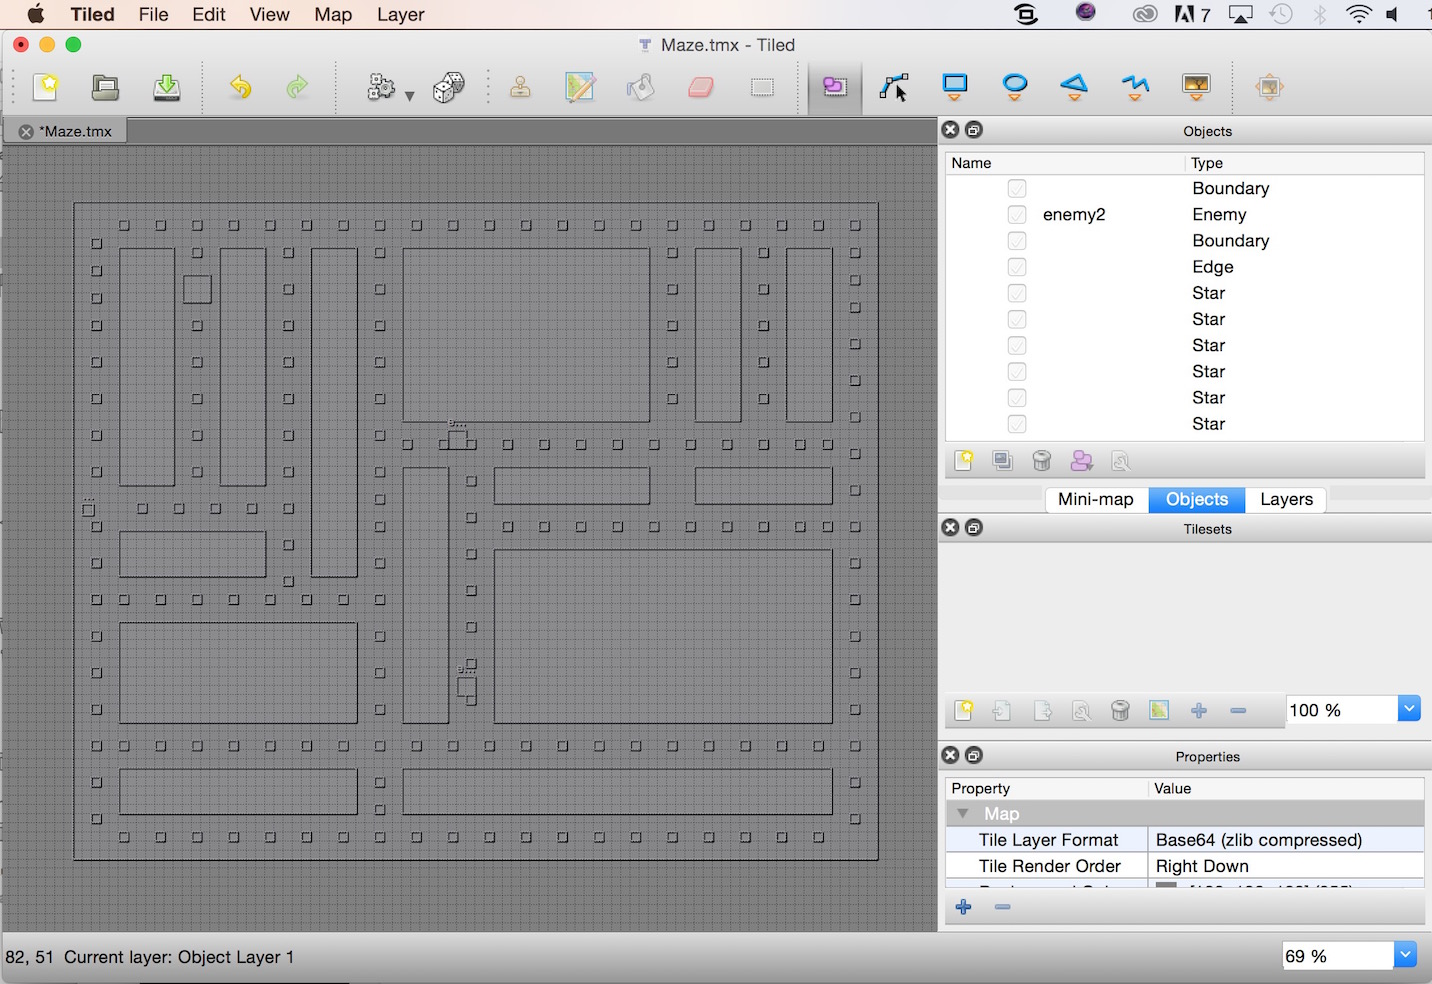 Session 2 Layout with Tiled Image